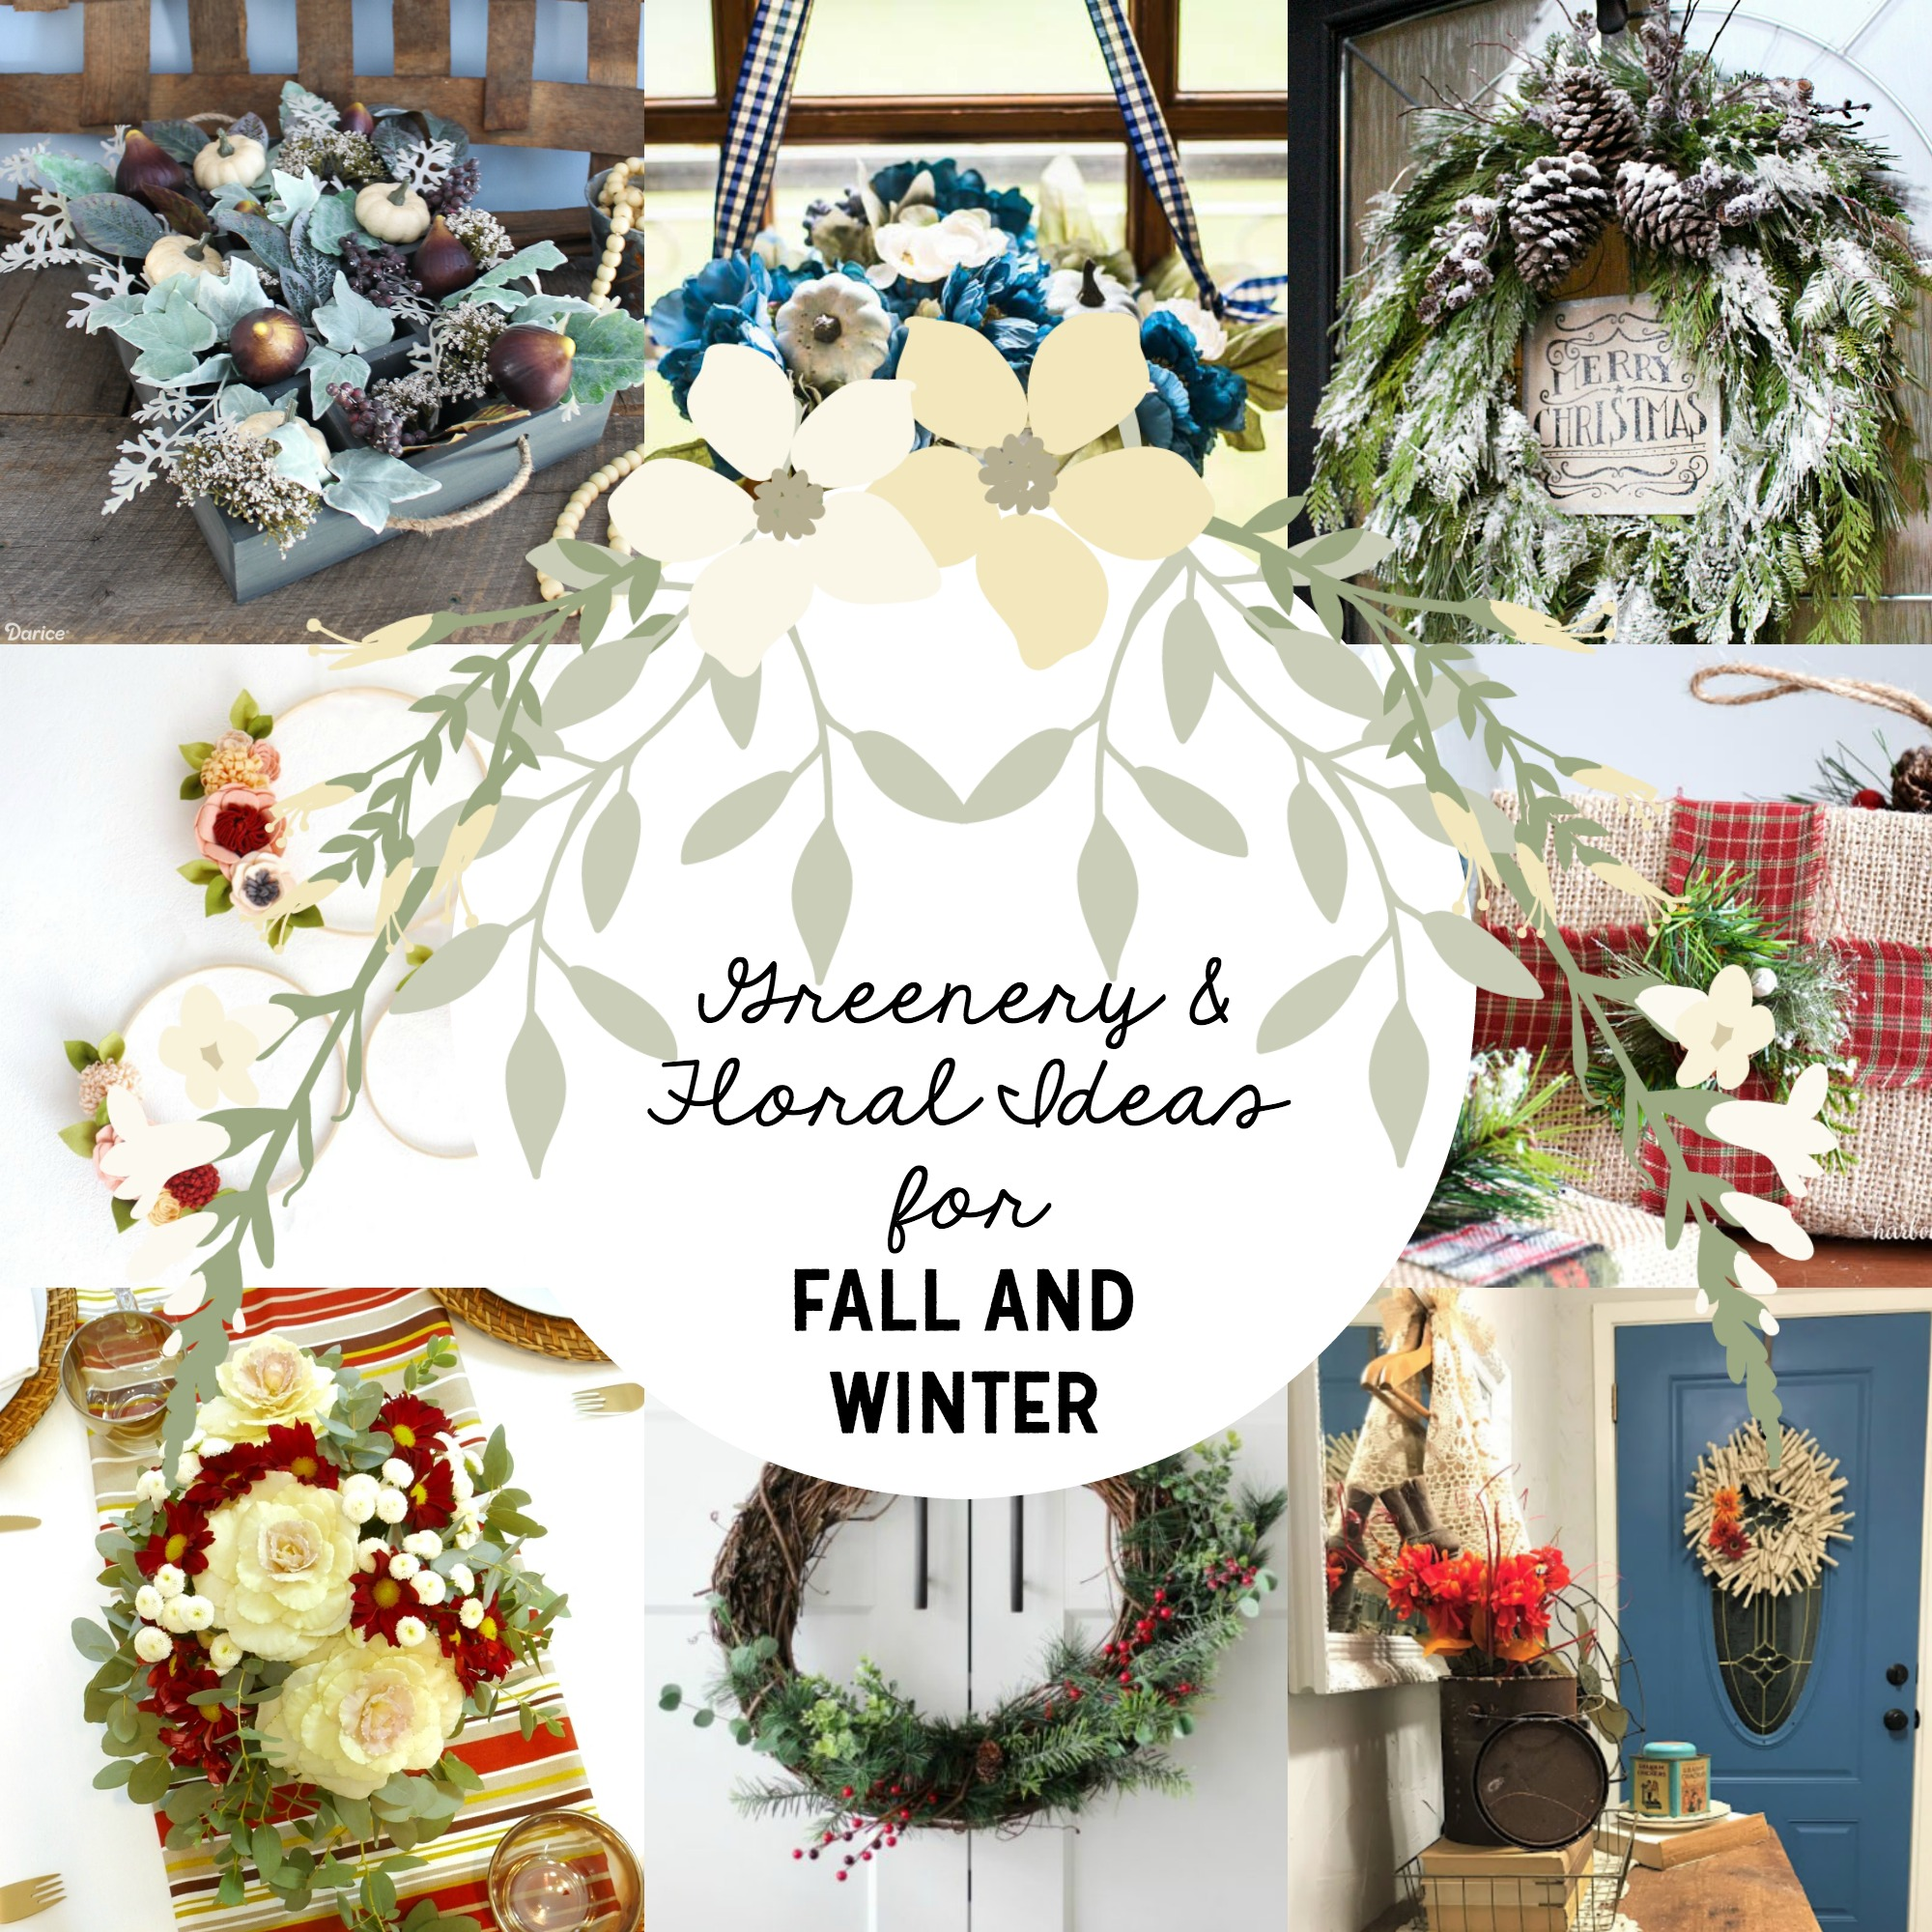 Greenery & Floral Ideas for Fall and Winter